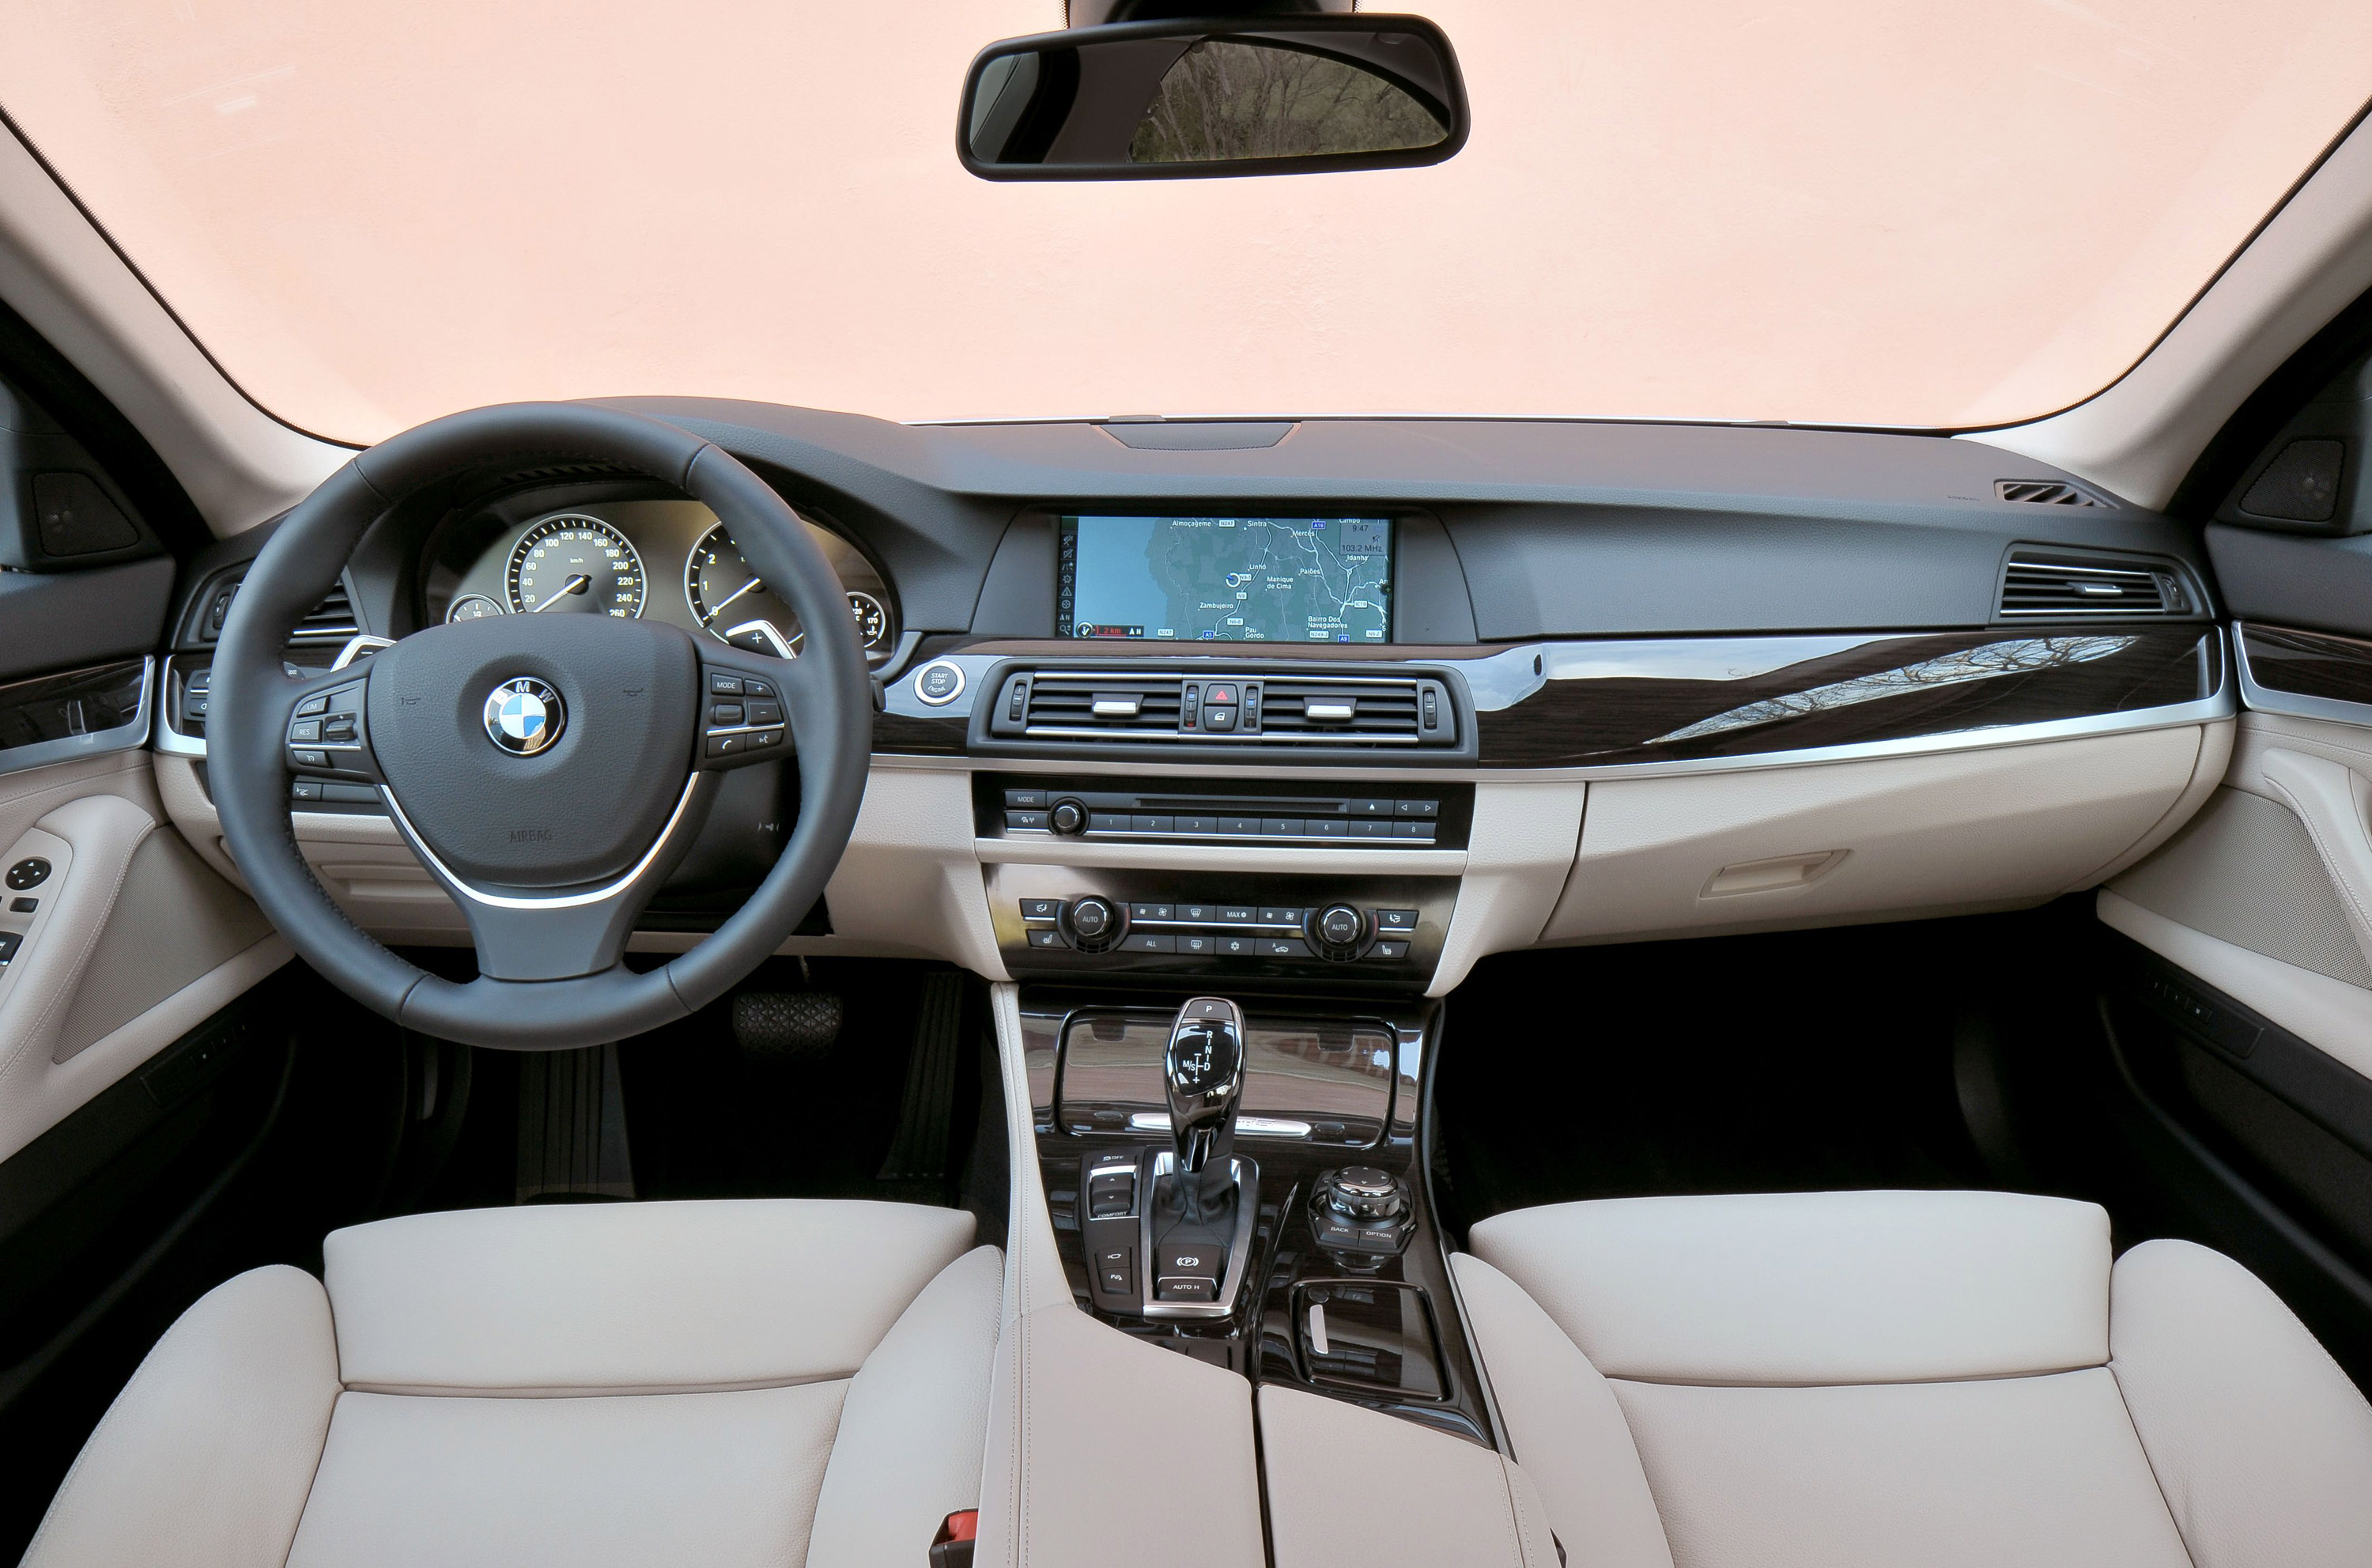 2012 Bmw F10 Active Hybrid 5 Picture 63887